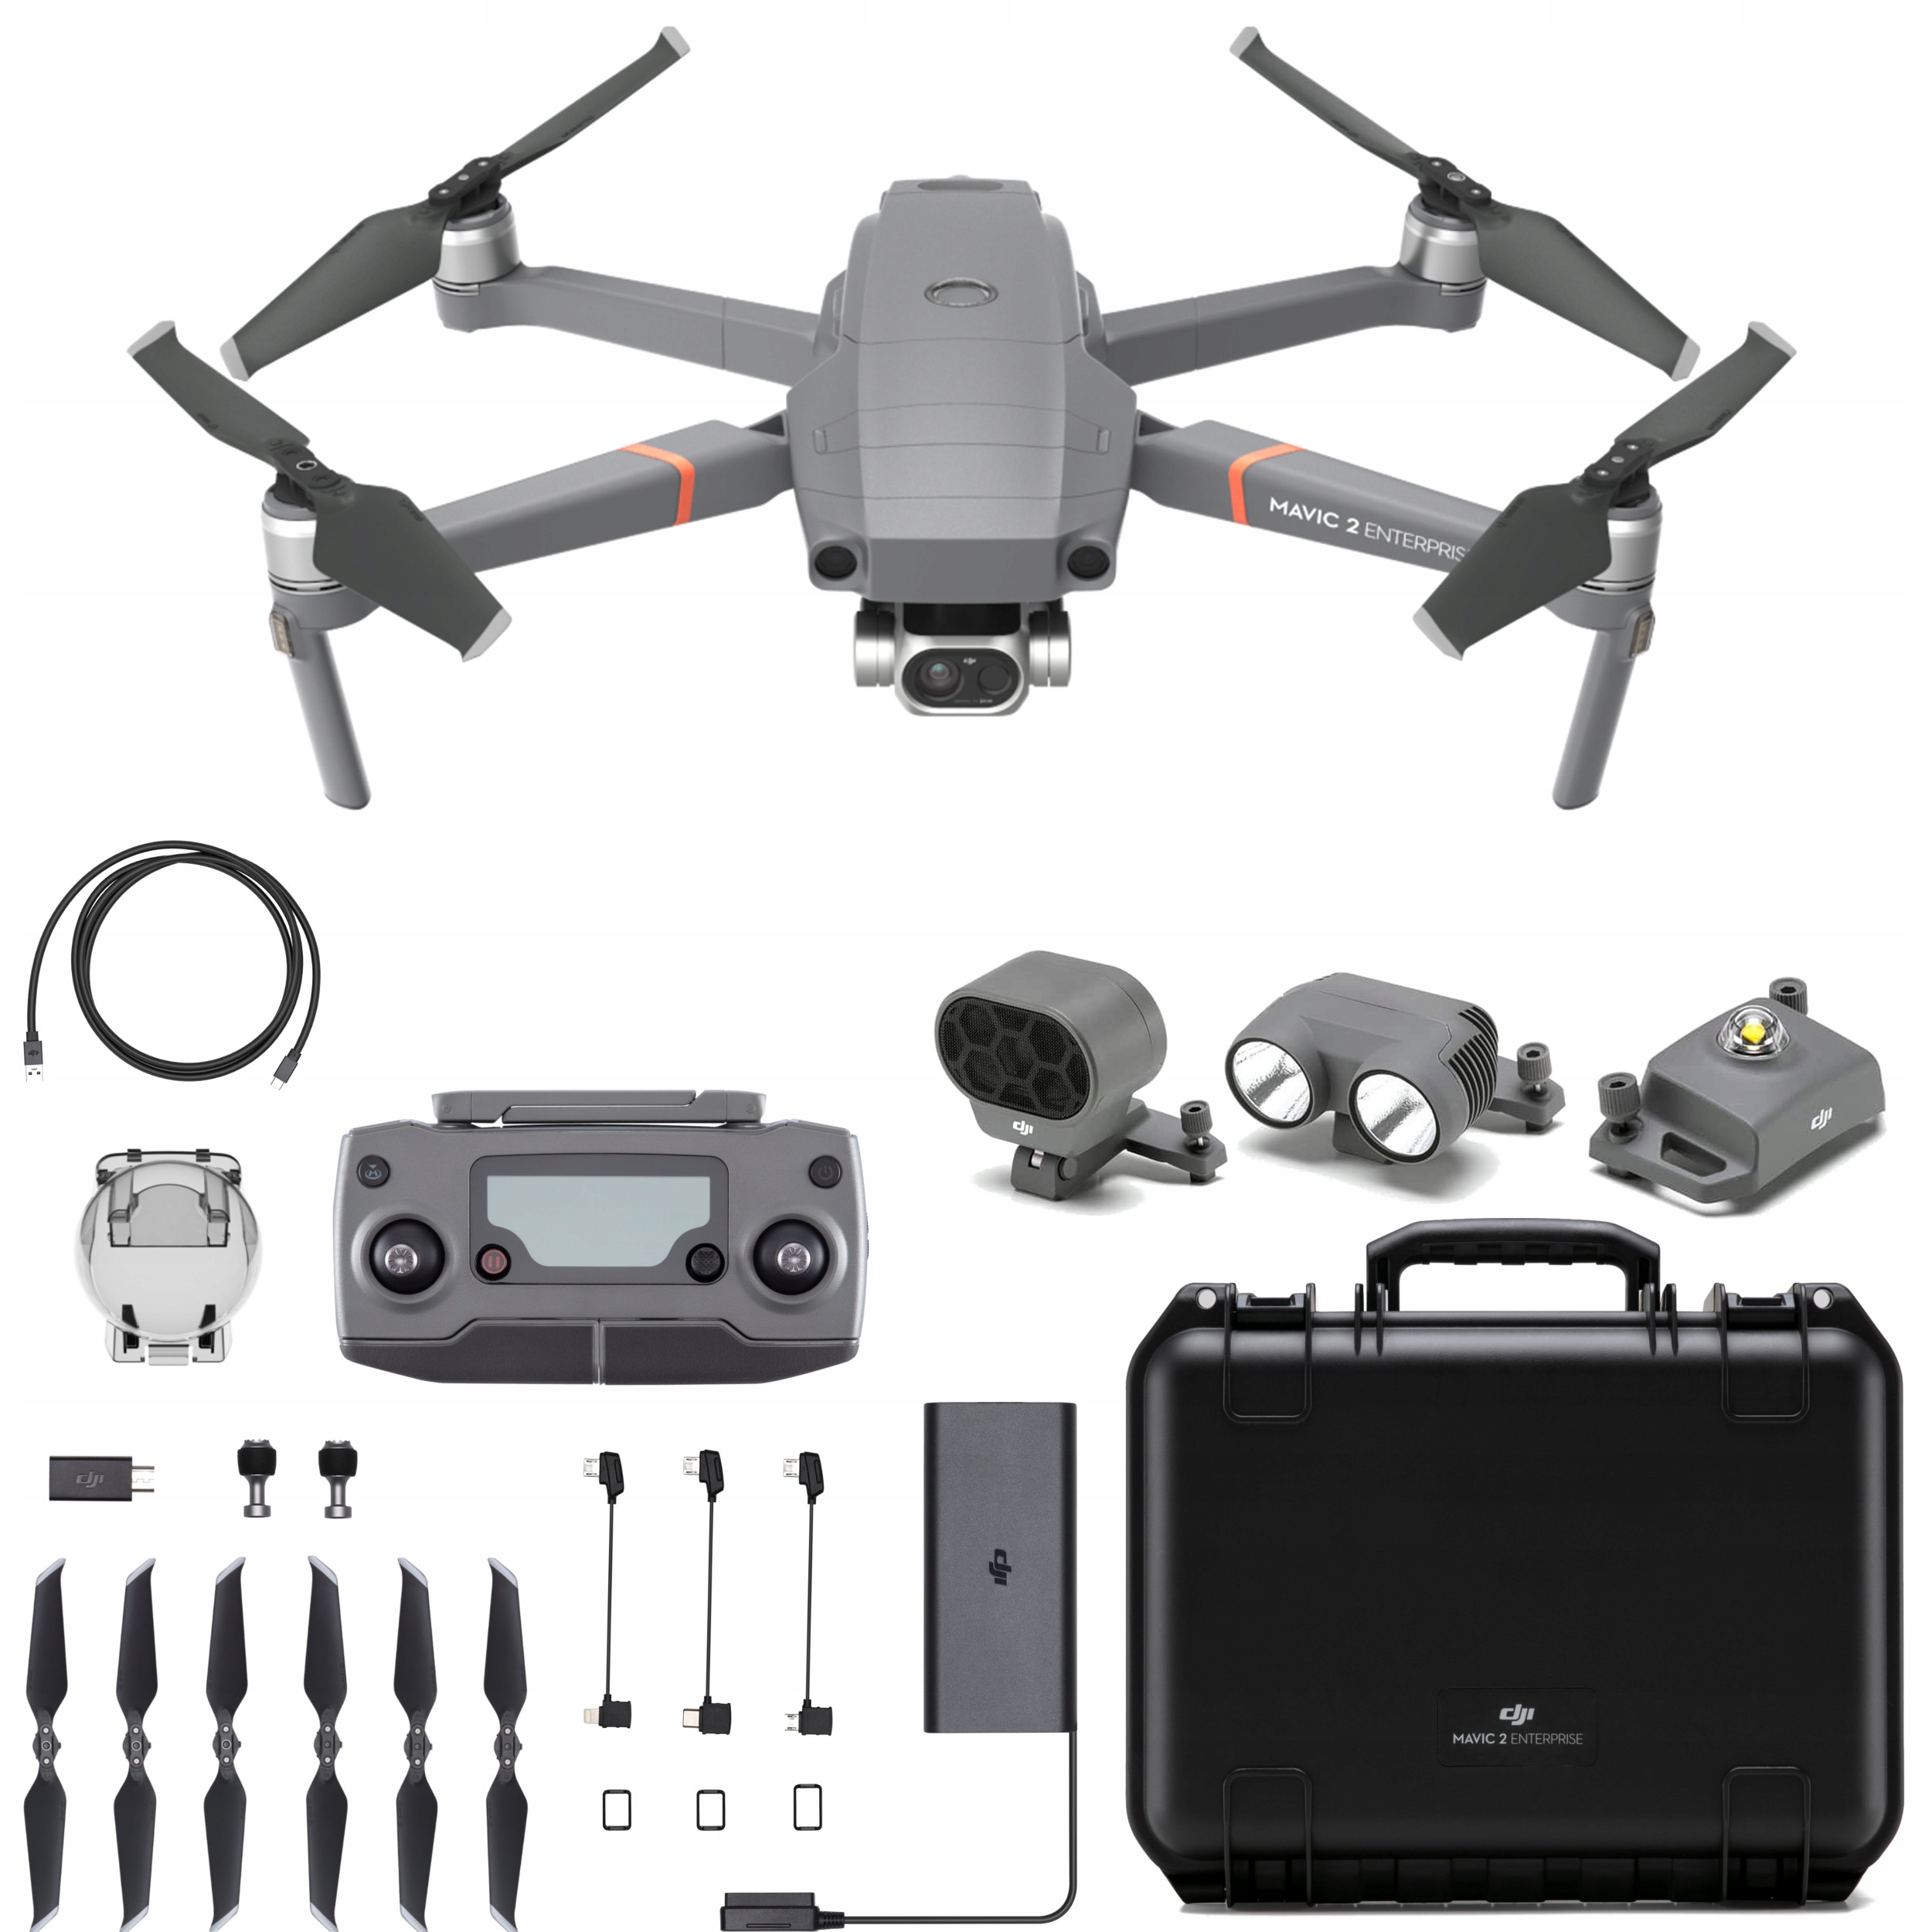 DJI MAVIC 2 ENTERPRISE DUAL 4K 12MP TERMOWIZJA